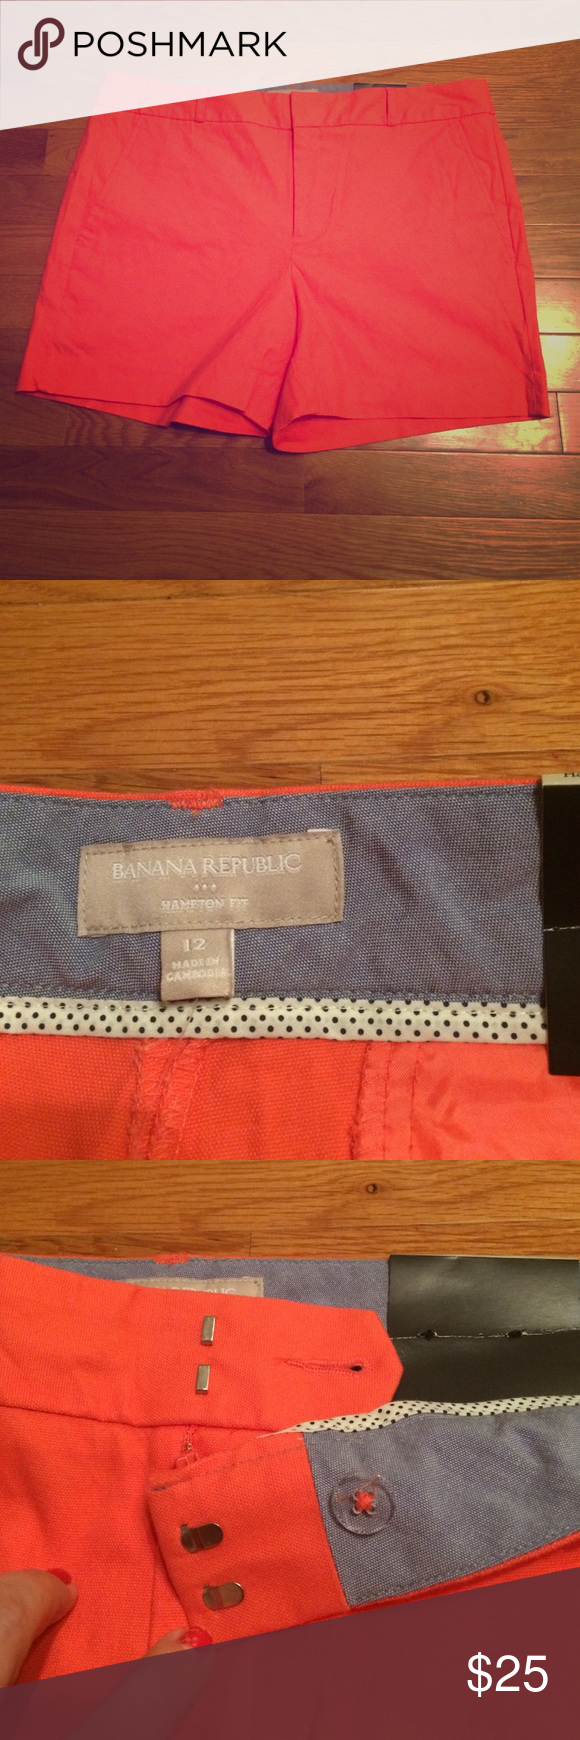 """Banana Republic Shorts These are Hampton fit shorts. They have a 4 1/2"""" inseam. They have never been worn and still have the tag on. I want to call the color of these shorts coral. If you have any questions please ask! Banana Republic Shorts"""